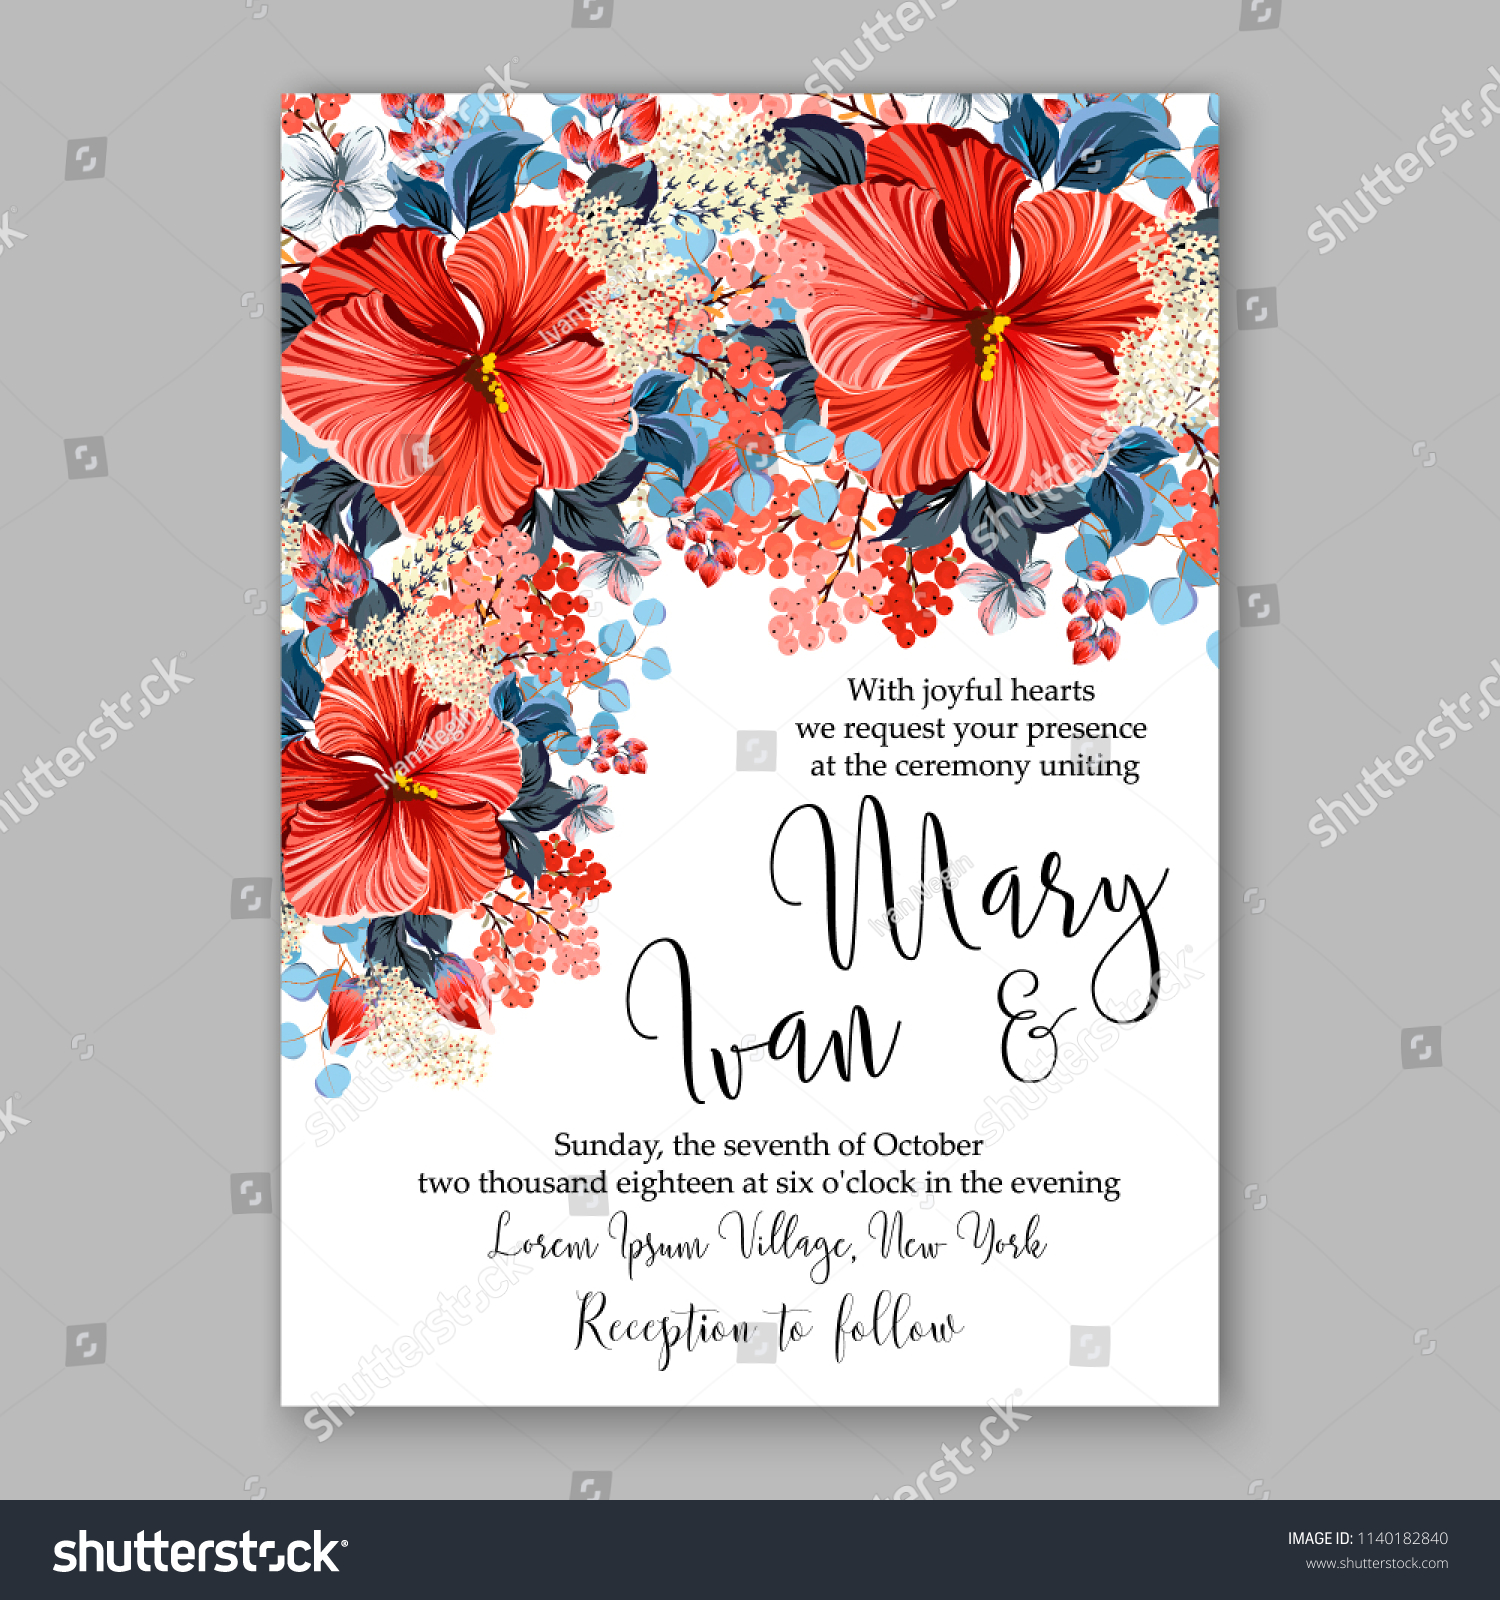 Red Hibiscus Wedding Invitation Tropical Floral Stock Vector ...